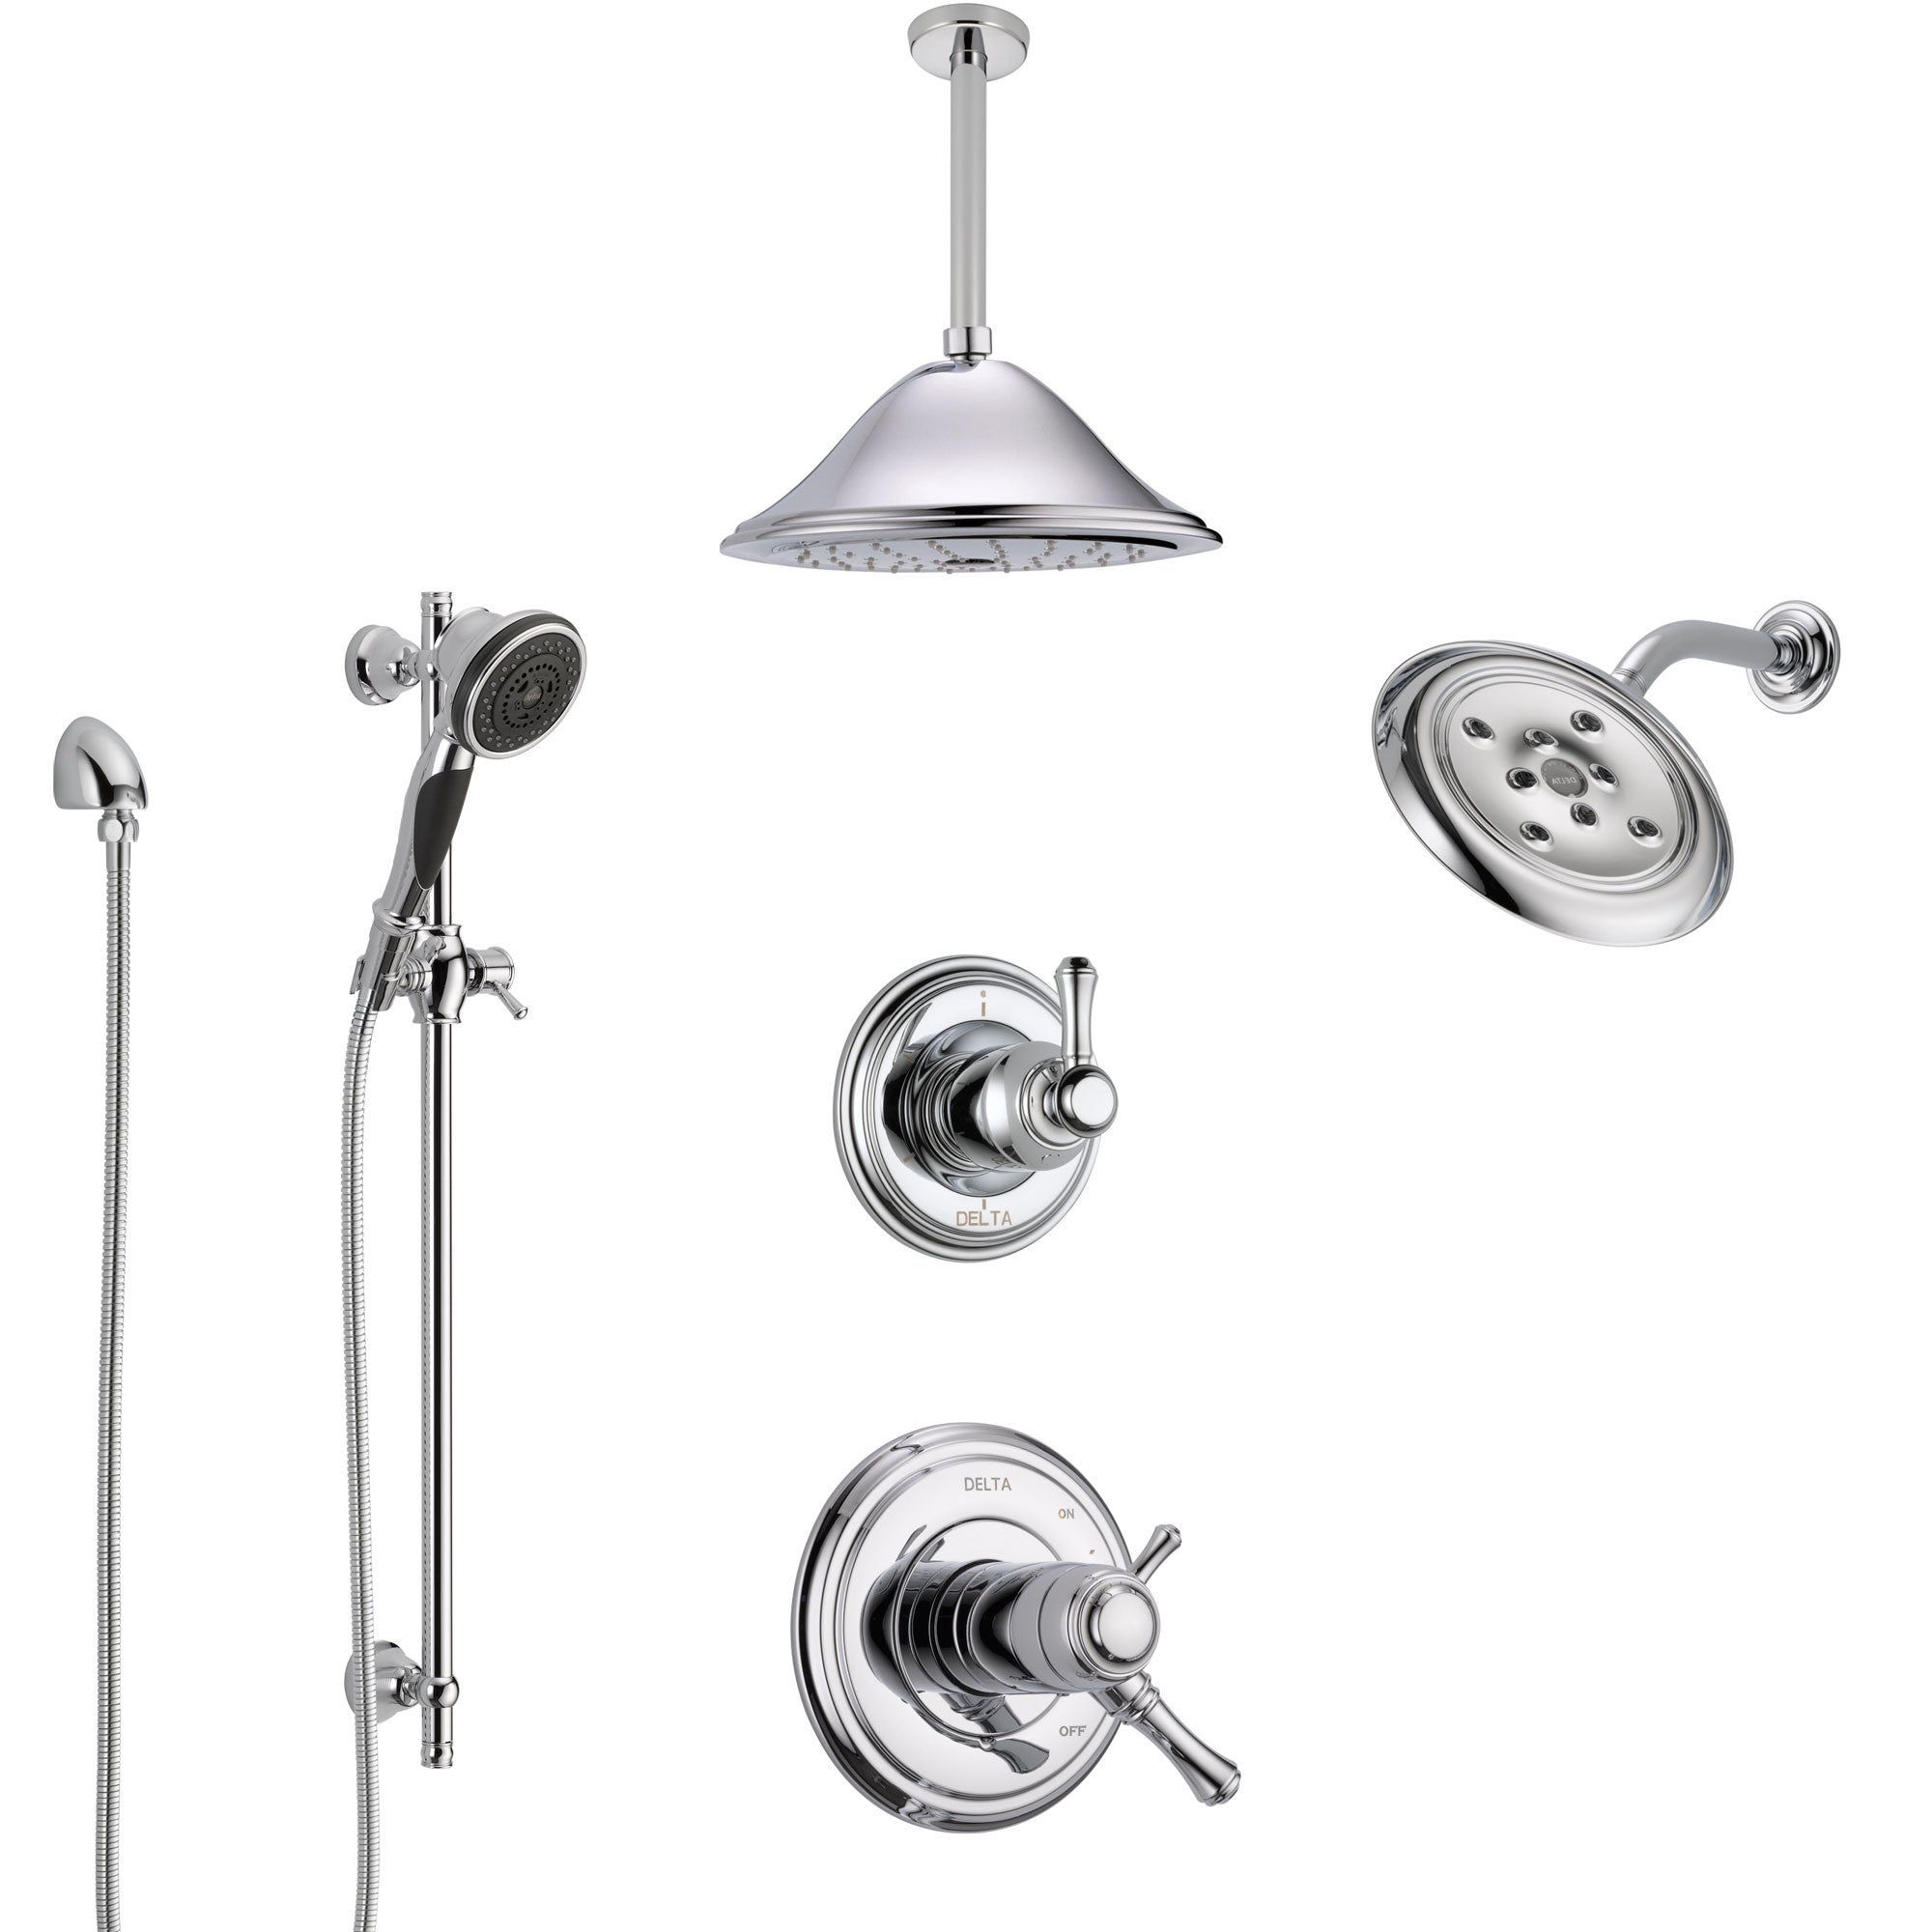 Delta Cassidy Chrome Shower System with Dual Thermostatic Control, 6-Setting Diverter, Showerhead, Ceiling Mount Showerhead, and Hand Shower SS17T9716